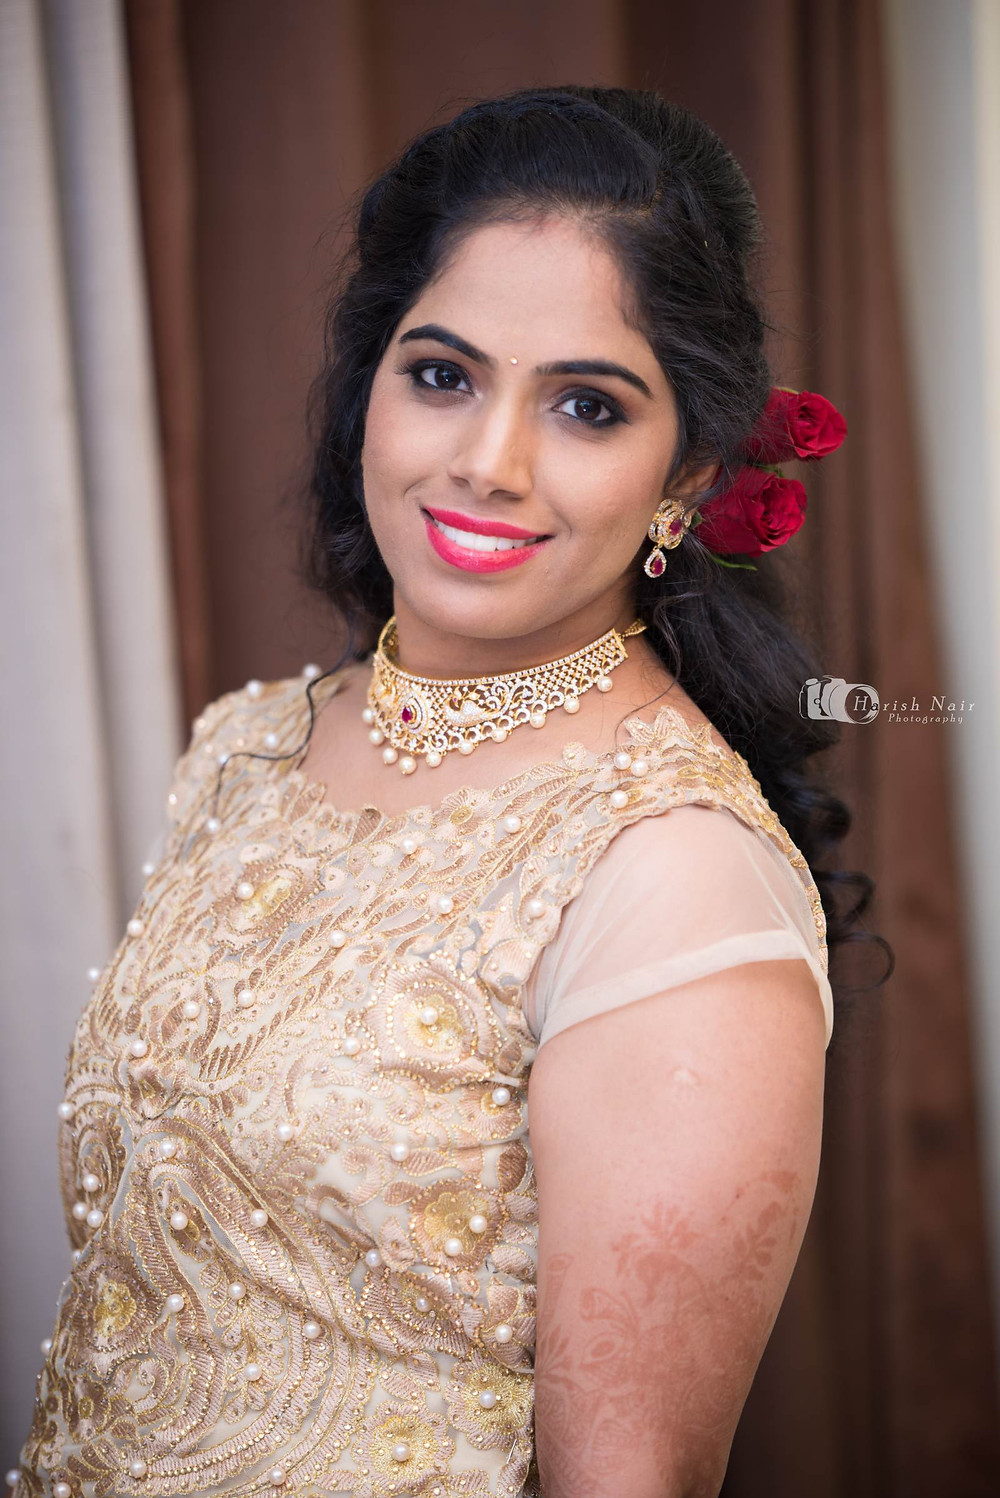 Candid Wedding Photographer Navi Mumbai Candid Wedding Photographer Mumbai